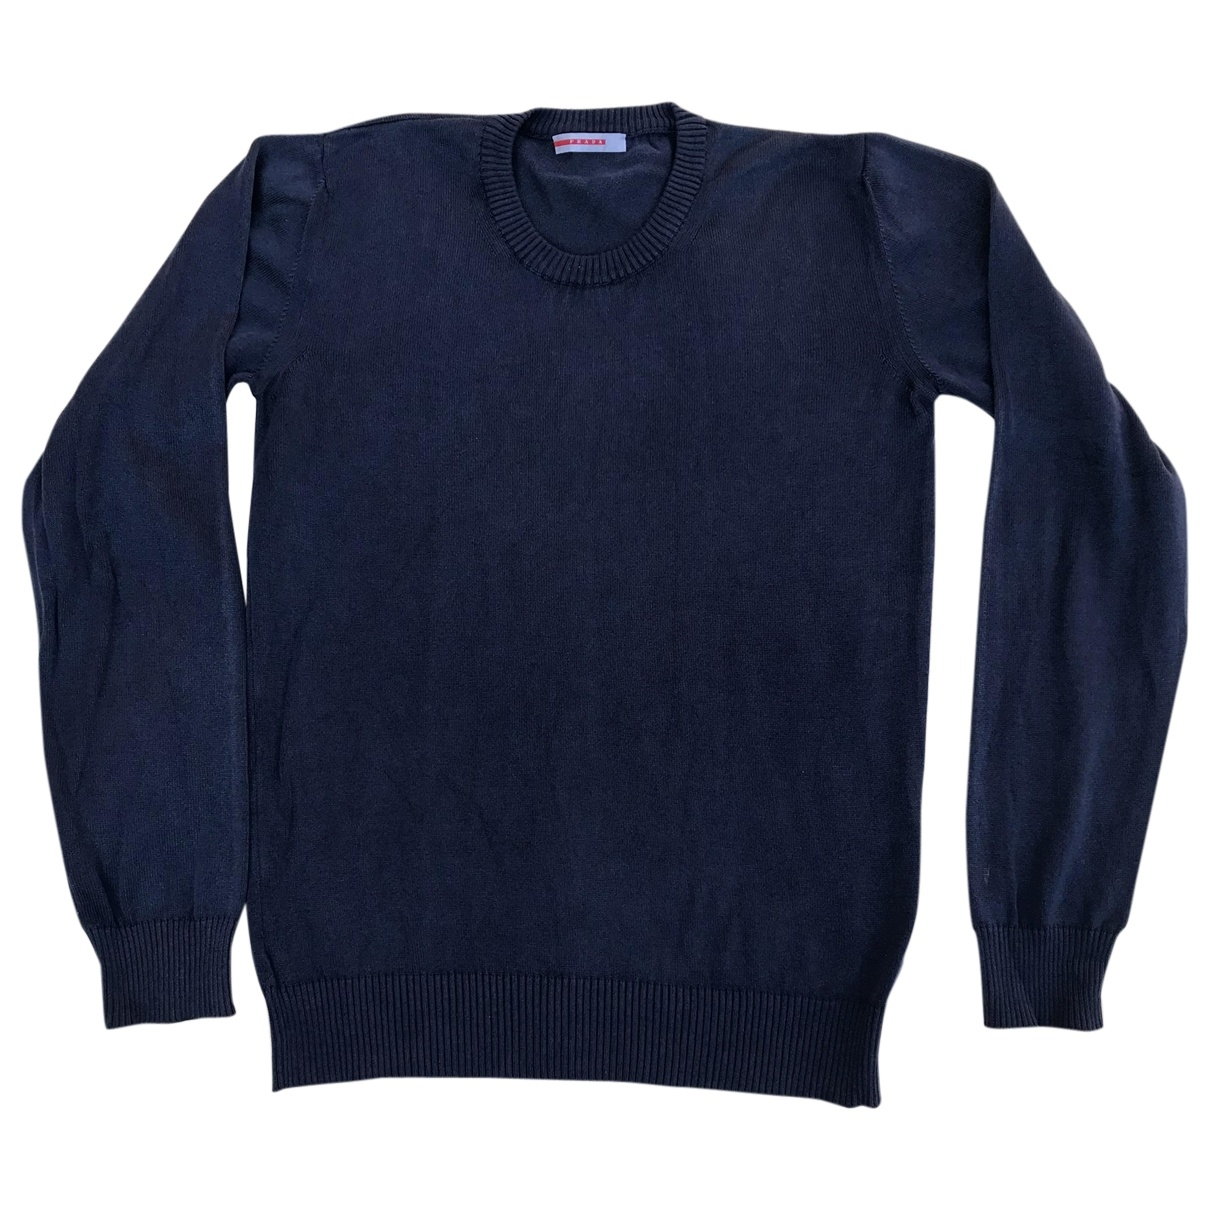 Prada \N Blue Cotton Knitwear & Sweatshirts for Men S International